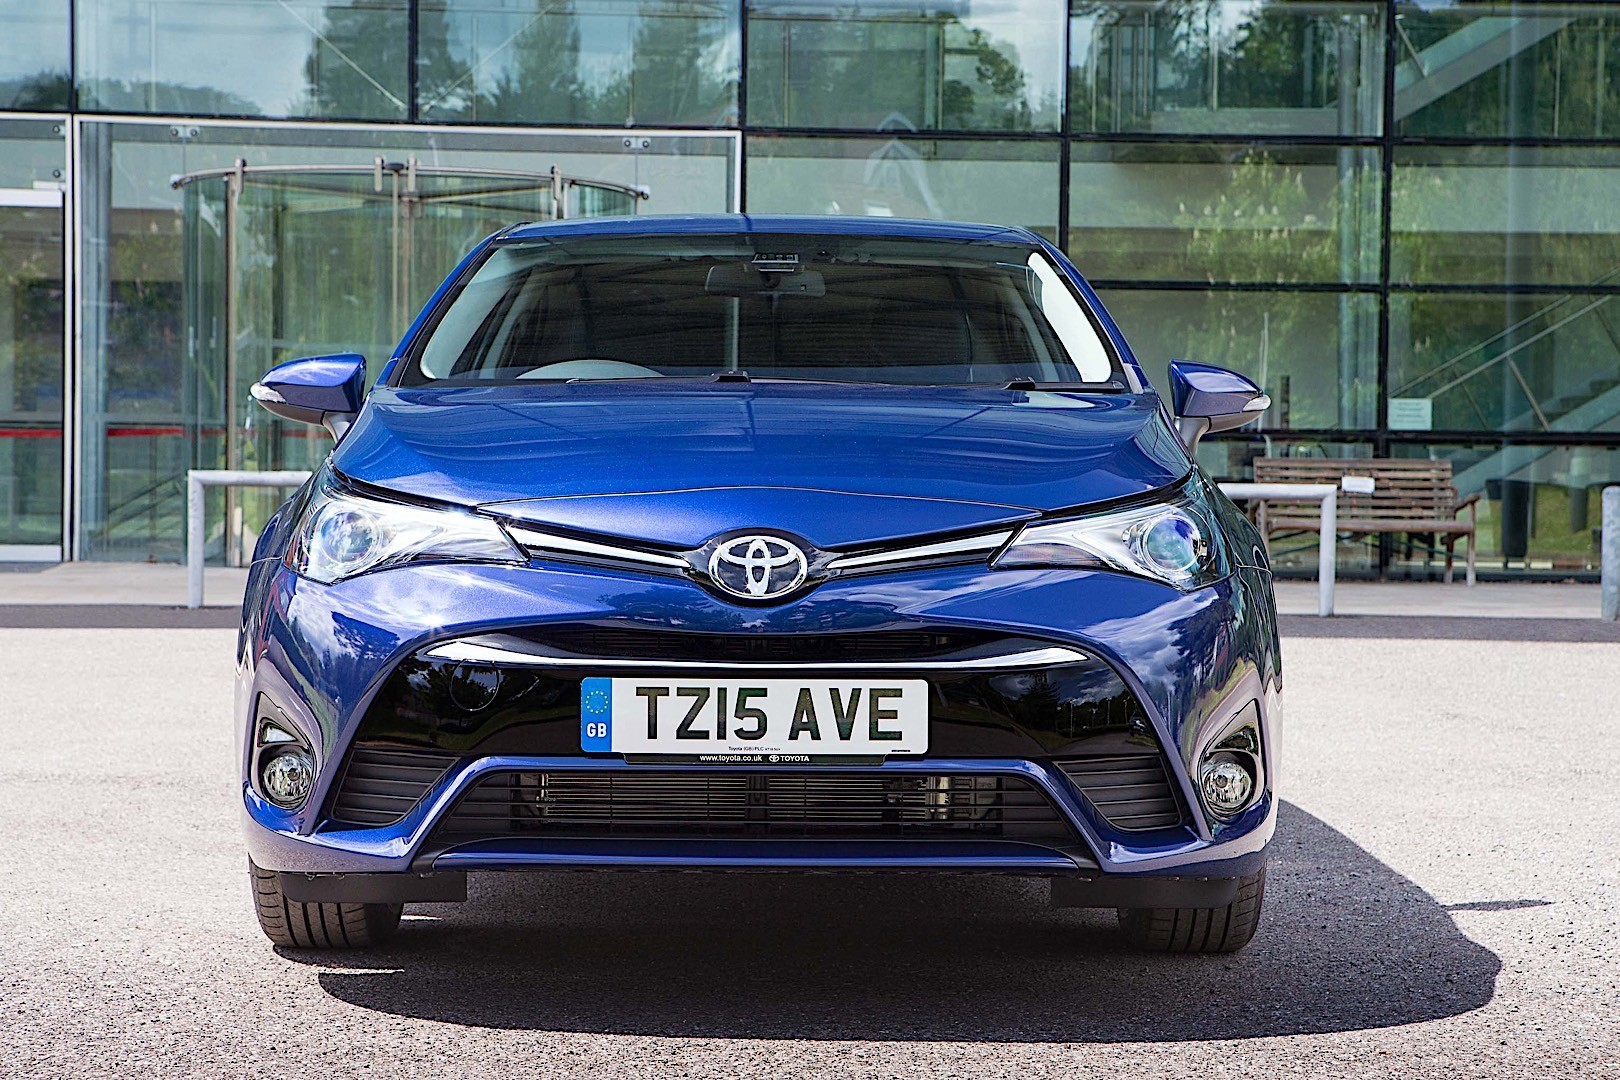 avensis toyota saloon exterior autoevolution present dimensions